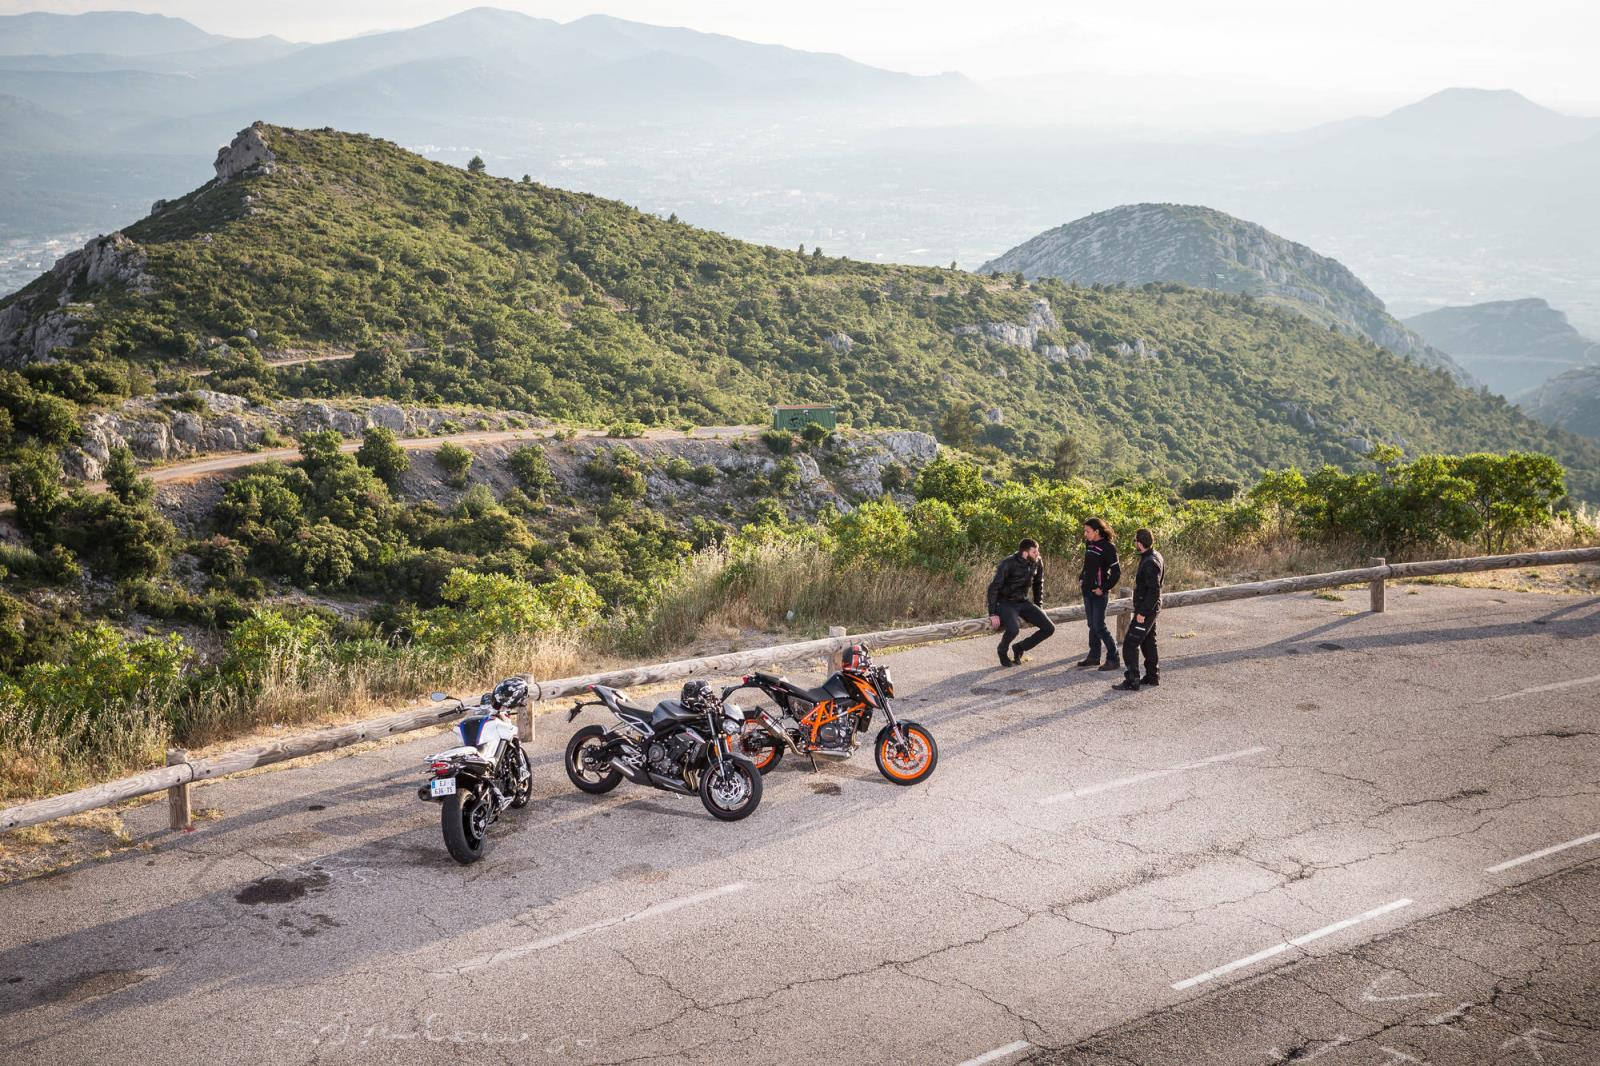 MICHELIN_Road_5_BMW_F800R_KTM_650Duke_Triumph_StreetTriple_005.jpg